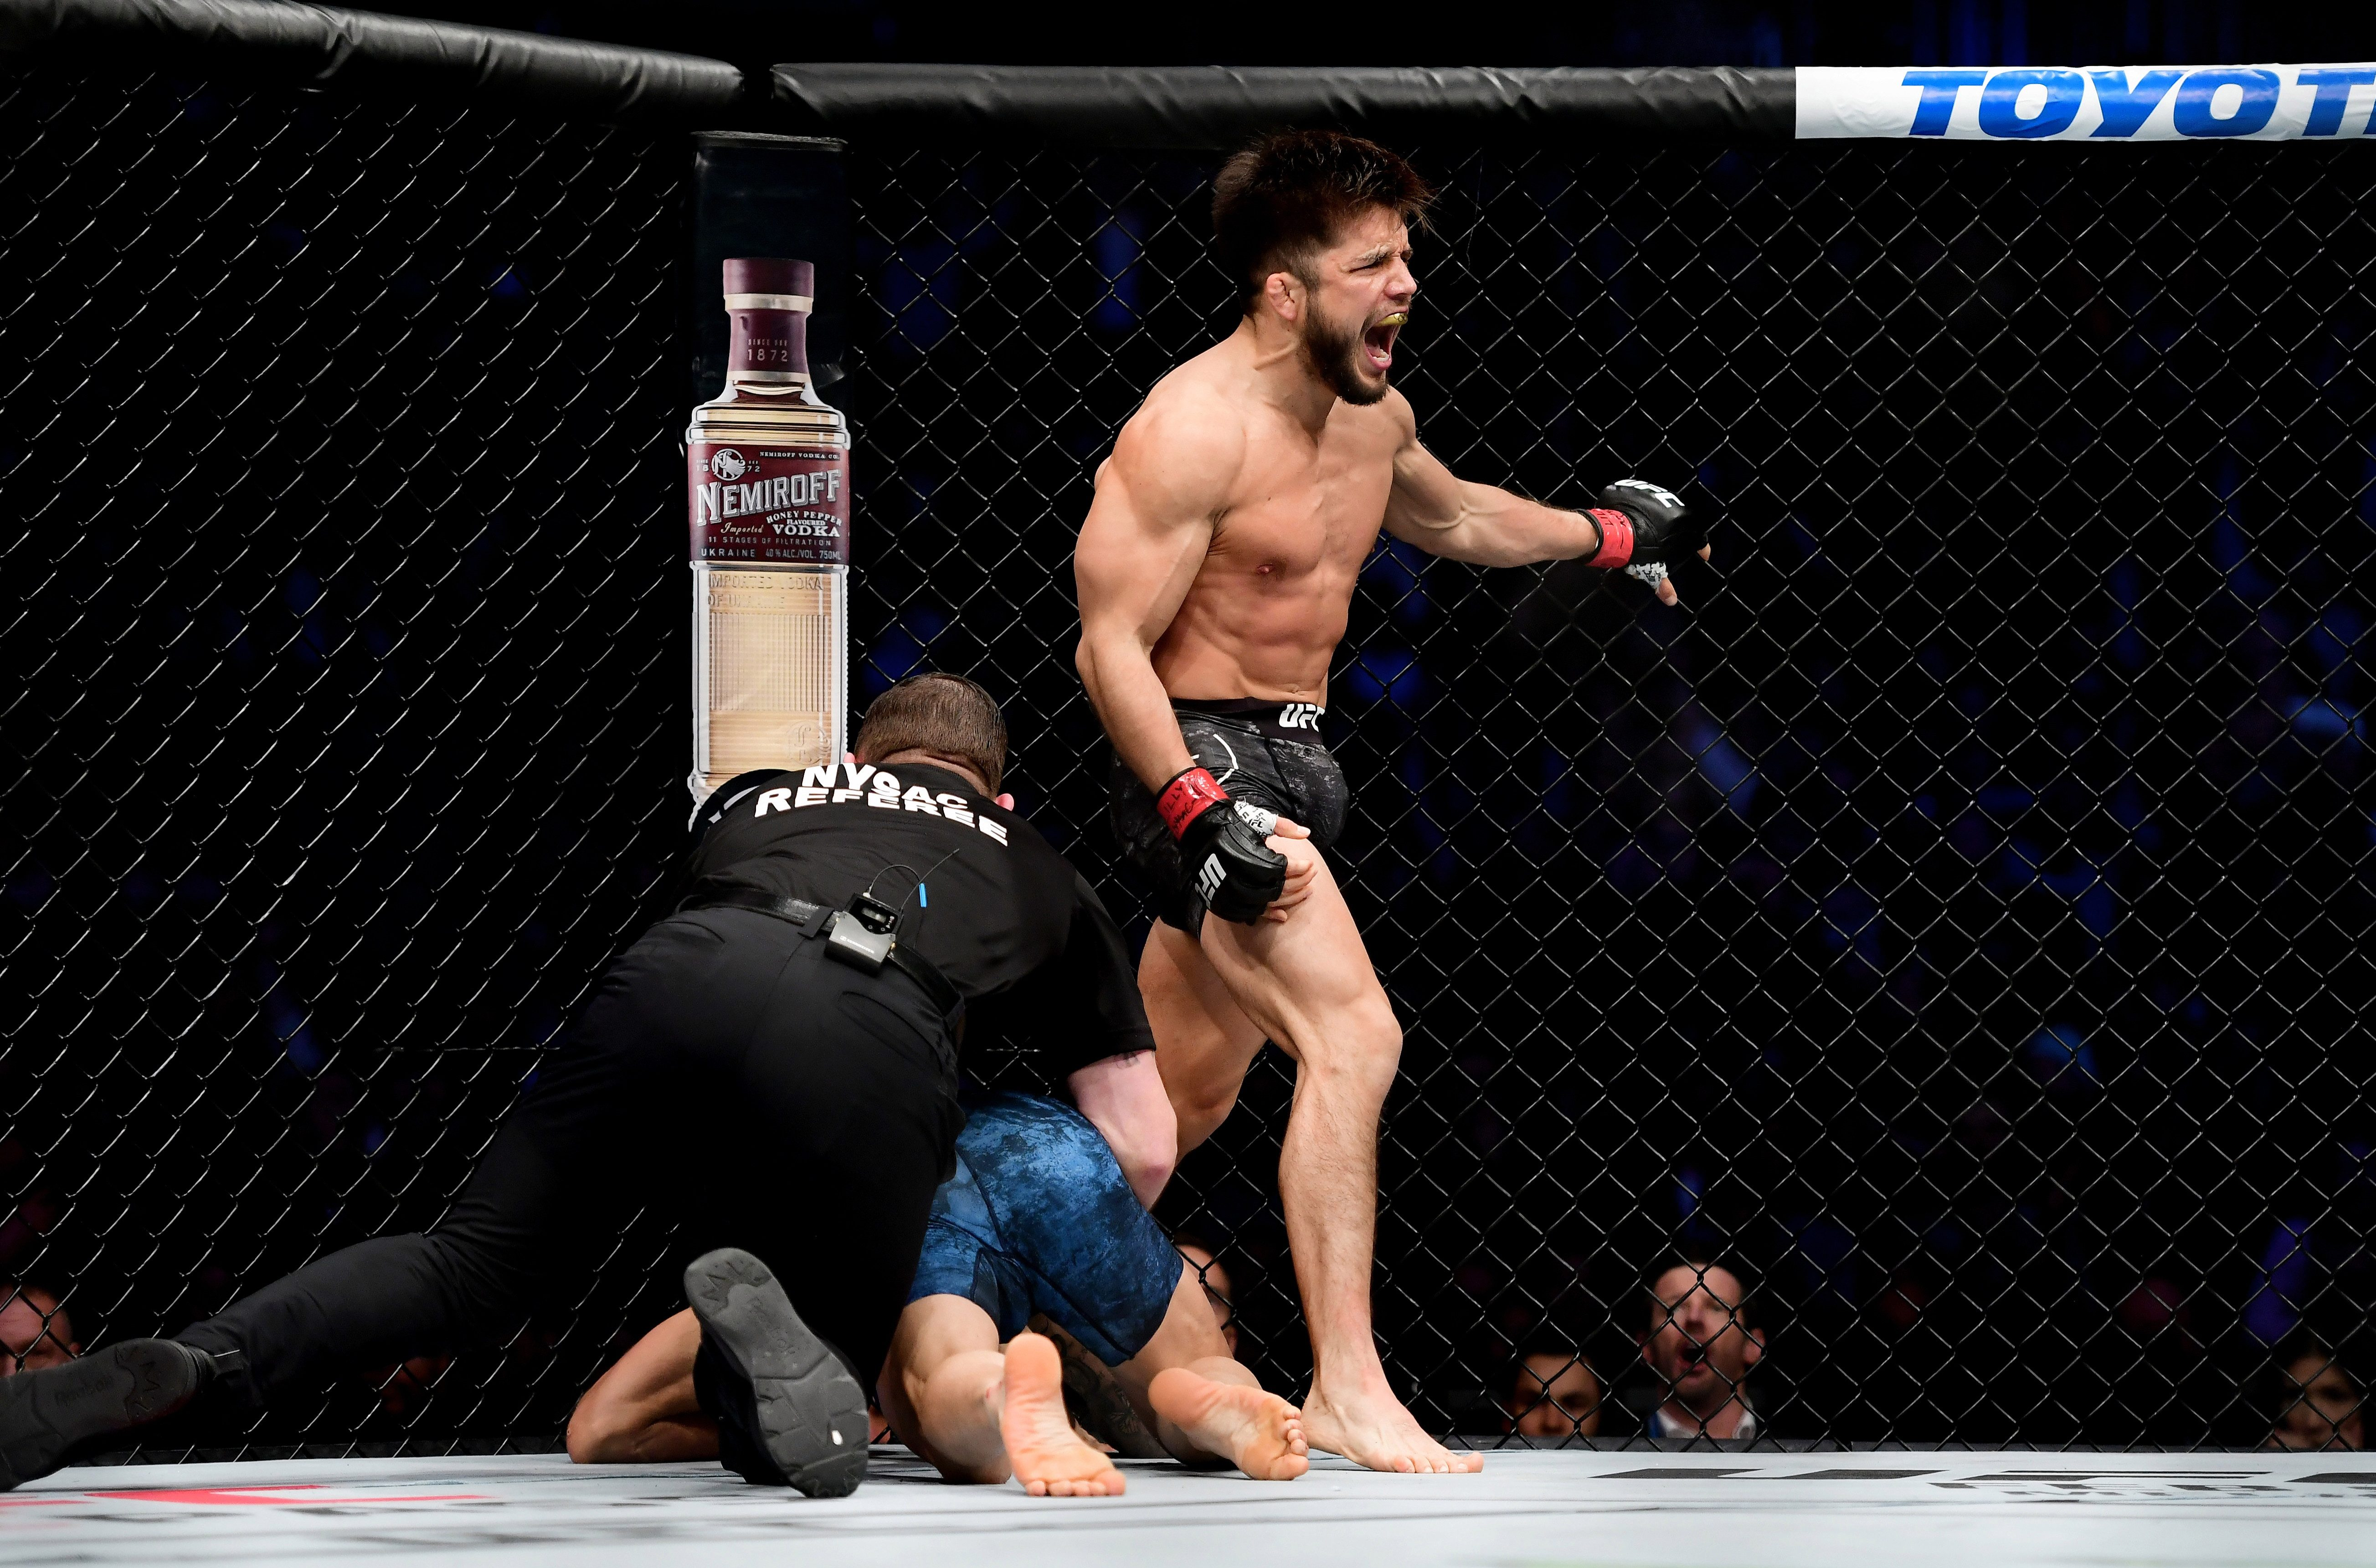 Cejudo beat Dillashaw in January in just 32 seconds, though the challenger deemed the stoppage early and wanted a rematch